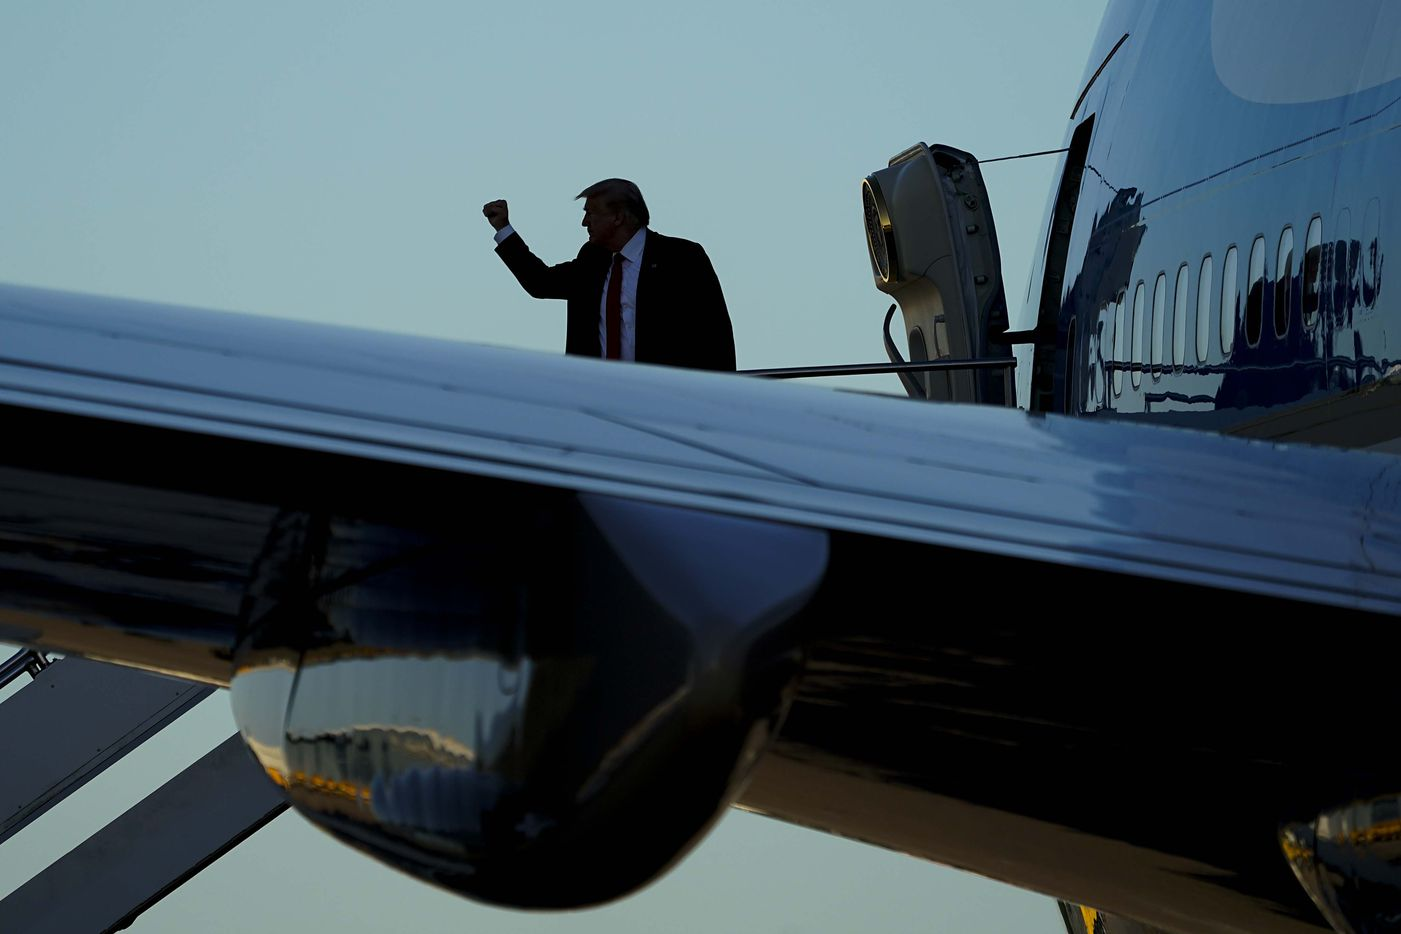 President Donald Trump board Air Force One prior to departing Dallas Love Field Airport after he participated in a roundtable conversation about race relations and policing, and attended a fundraiser at a private residence, on Thursday, June 11, 2020, in Dallas. (Smiley N. Pool/The Dallas Morning News)